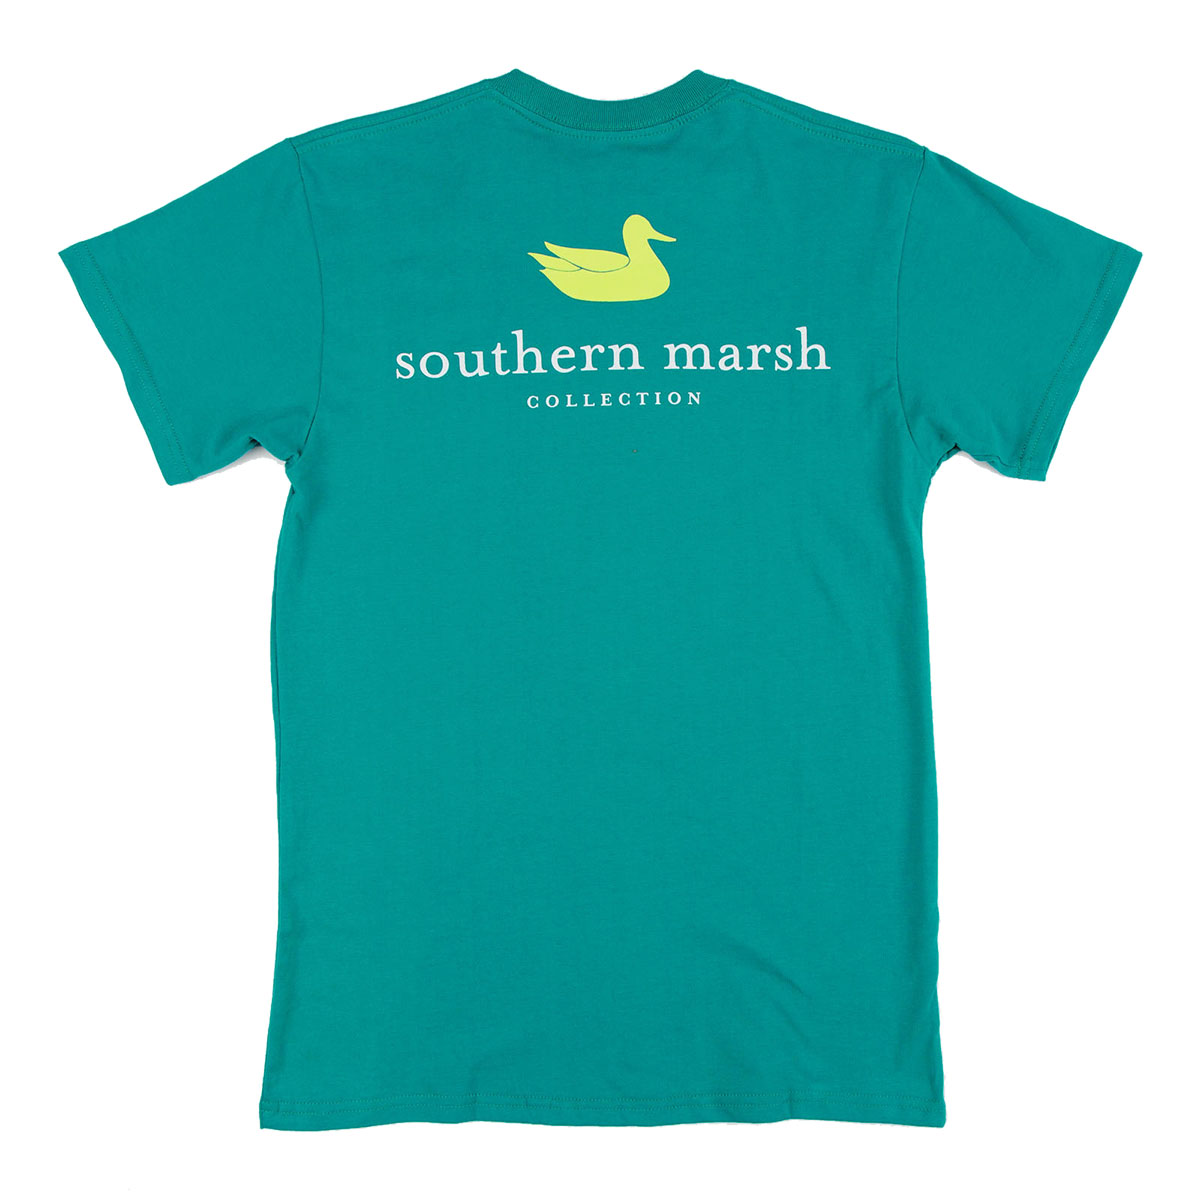 Southern Marsh. Known for its unique culture, beautiful people, and timeless dress – The South is an area of the country that still finds time to escape the hustle and bustle of big city life.